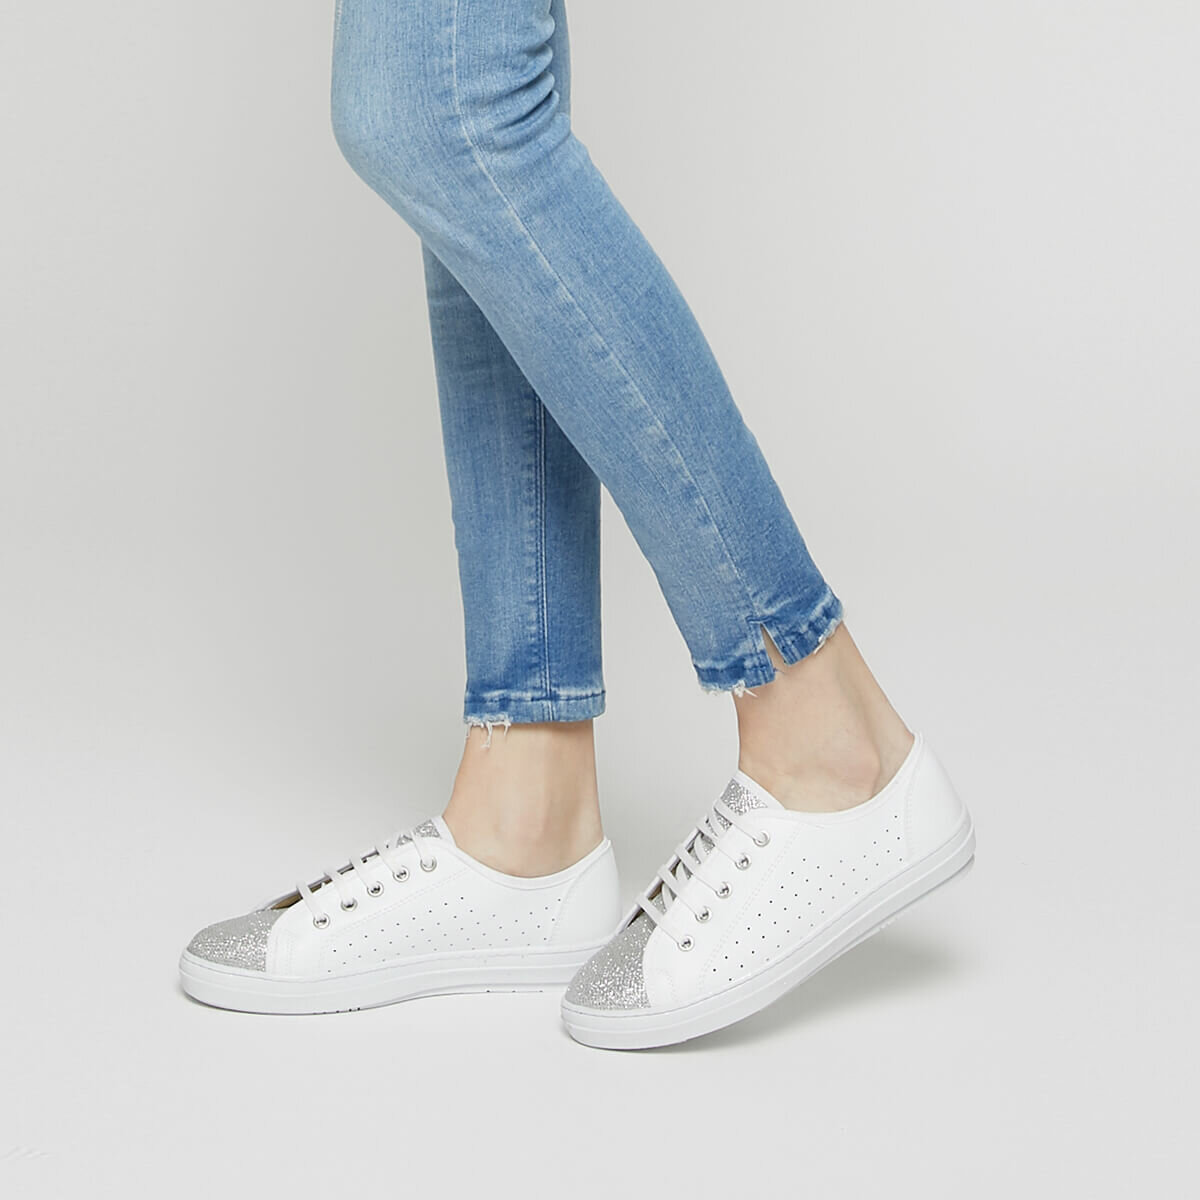 FLO CS19052 White Women 'S Sneaker Shoes Art Bella